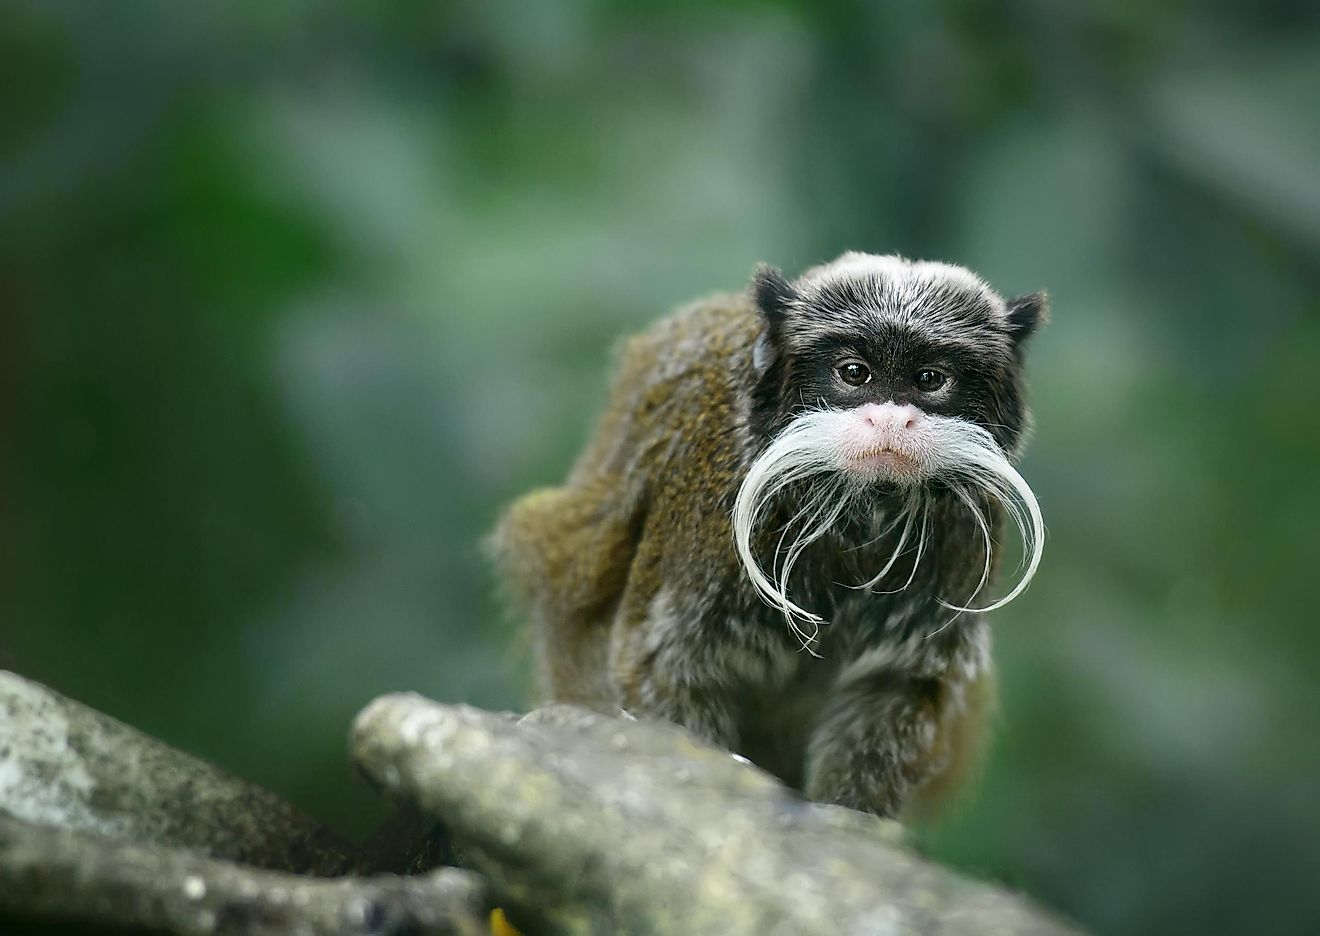 The Bearded Emperor Tamarin is famous for its iconic whiskers, which are said to resemble the facial hair of Wilhelm II, the last emperor of Germany.